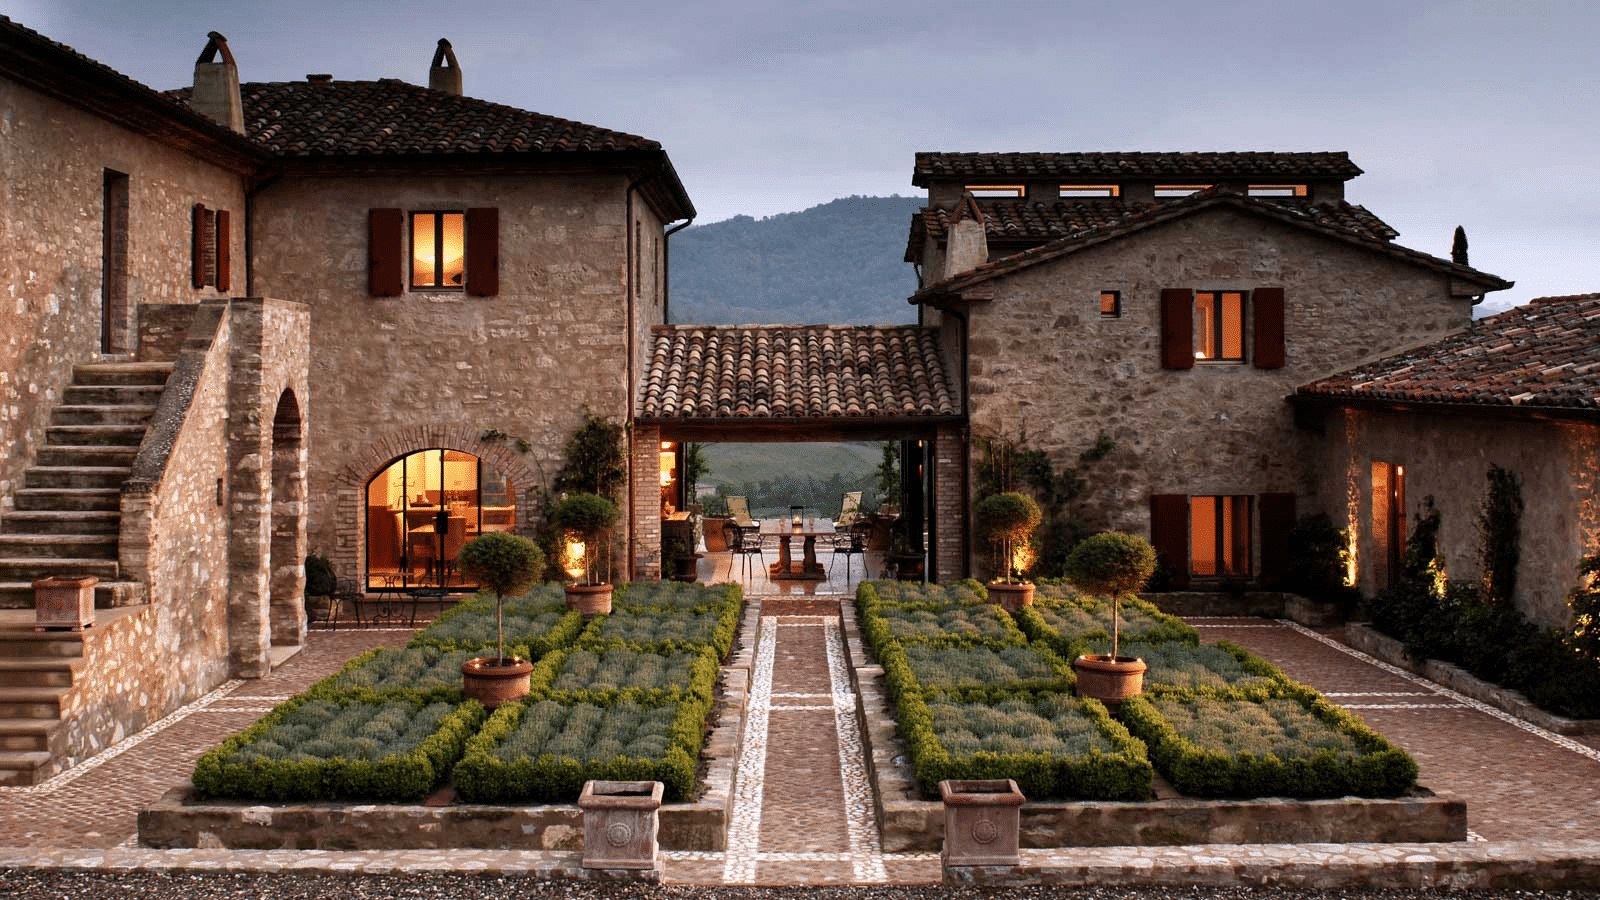 Courtyard of a house in Italy with two buildings linked by a tiled-roof portico with lights shining from the windows in the evening